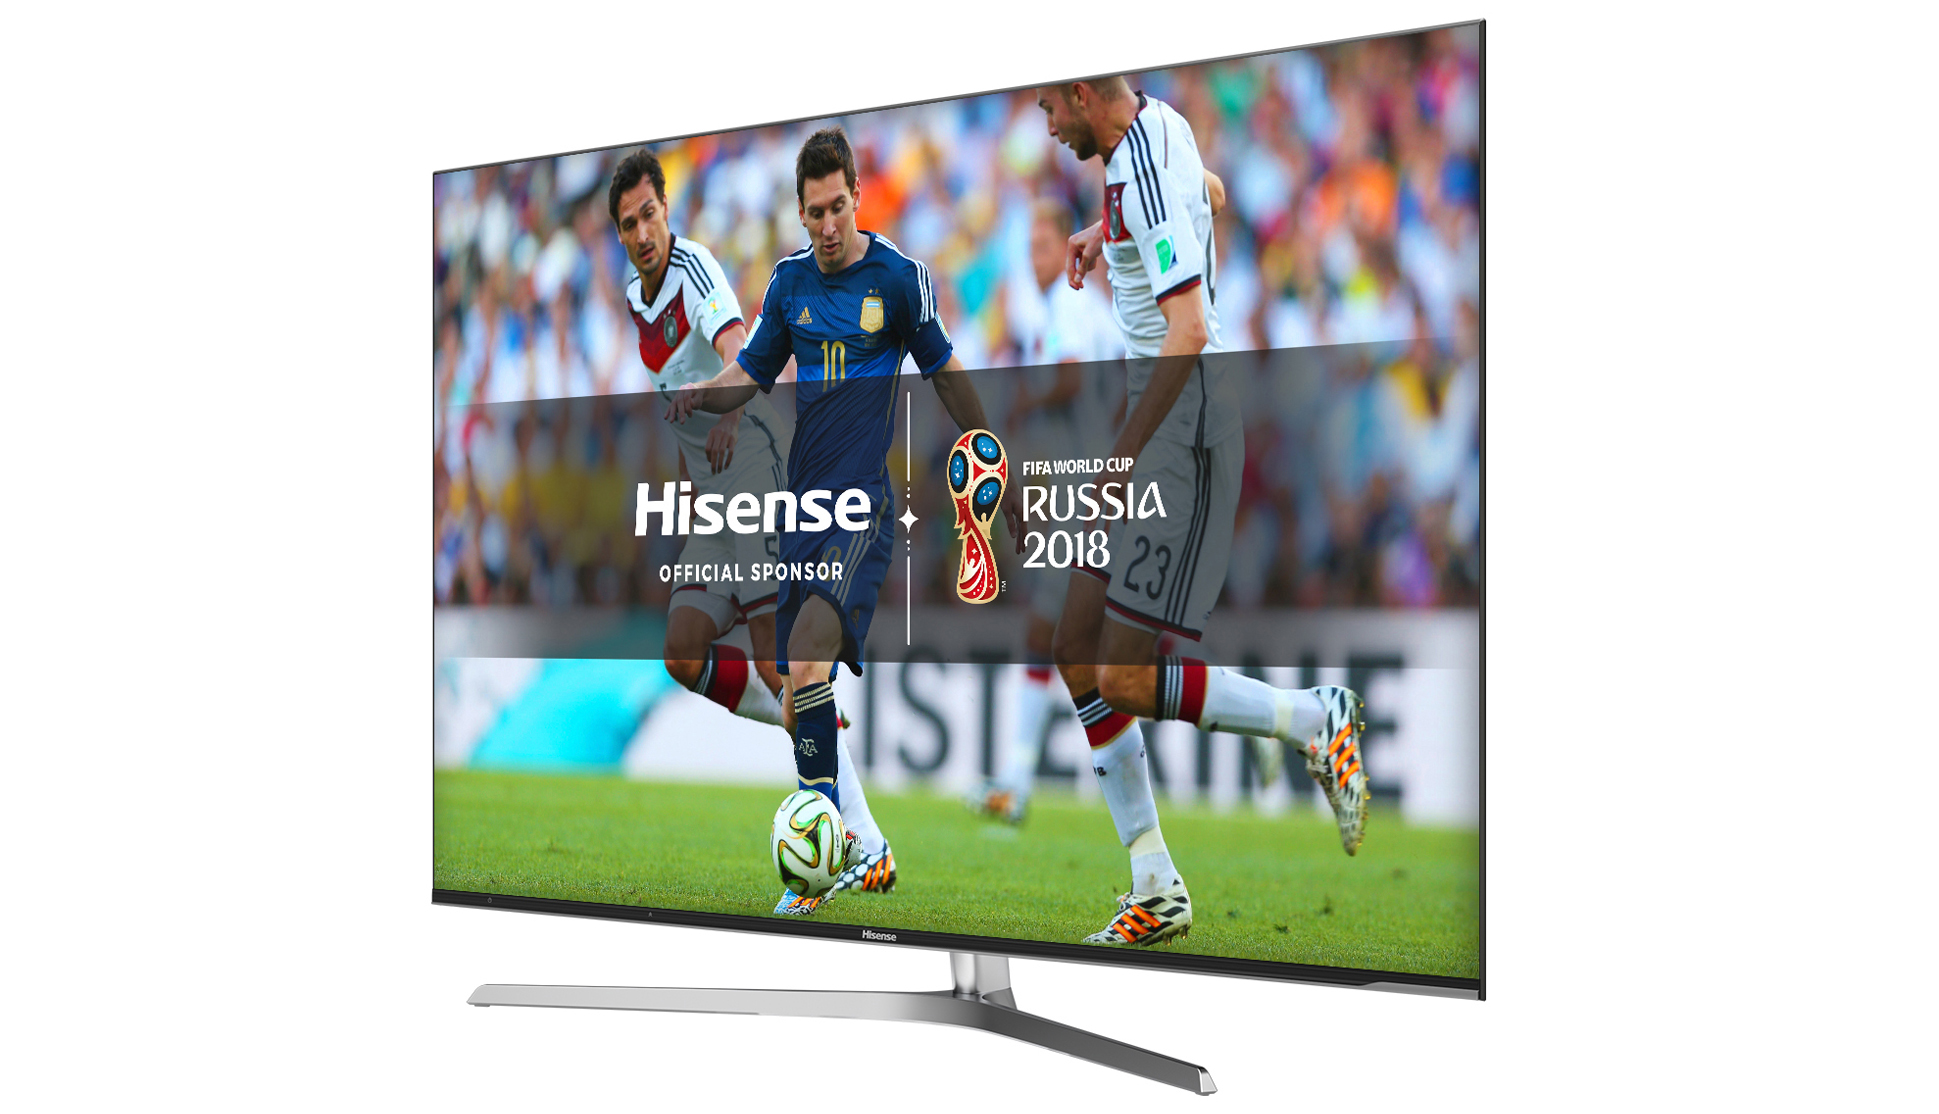 Hisense U7A 4K HDR 55-inch TV review: World Cup quality at a